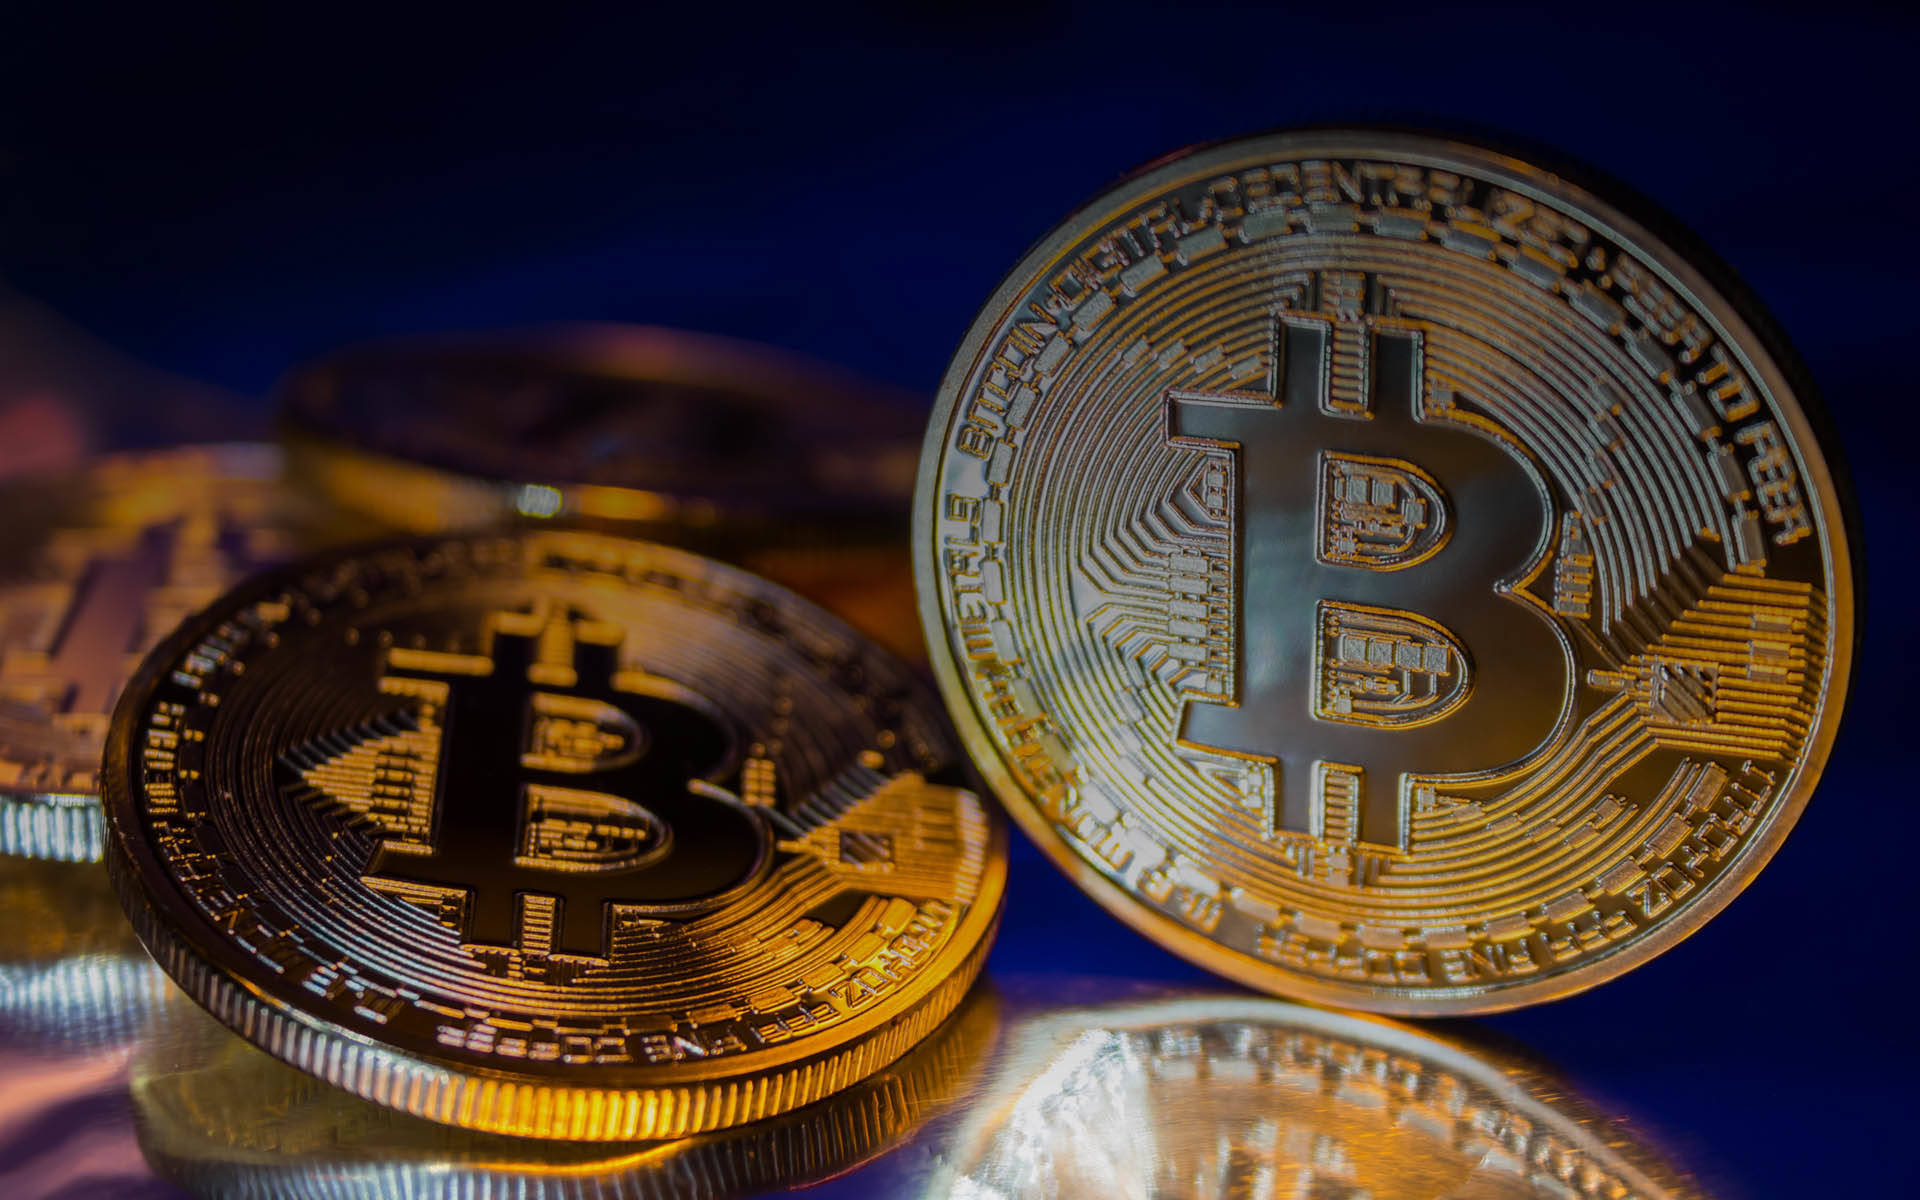 7310a82584568d49cccb_bitcoin-unlimited-support-featured.jpg